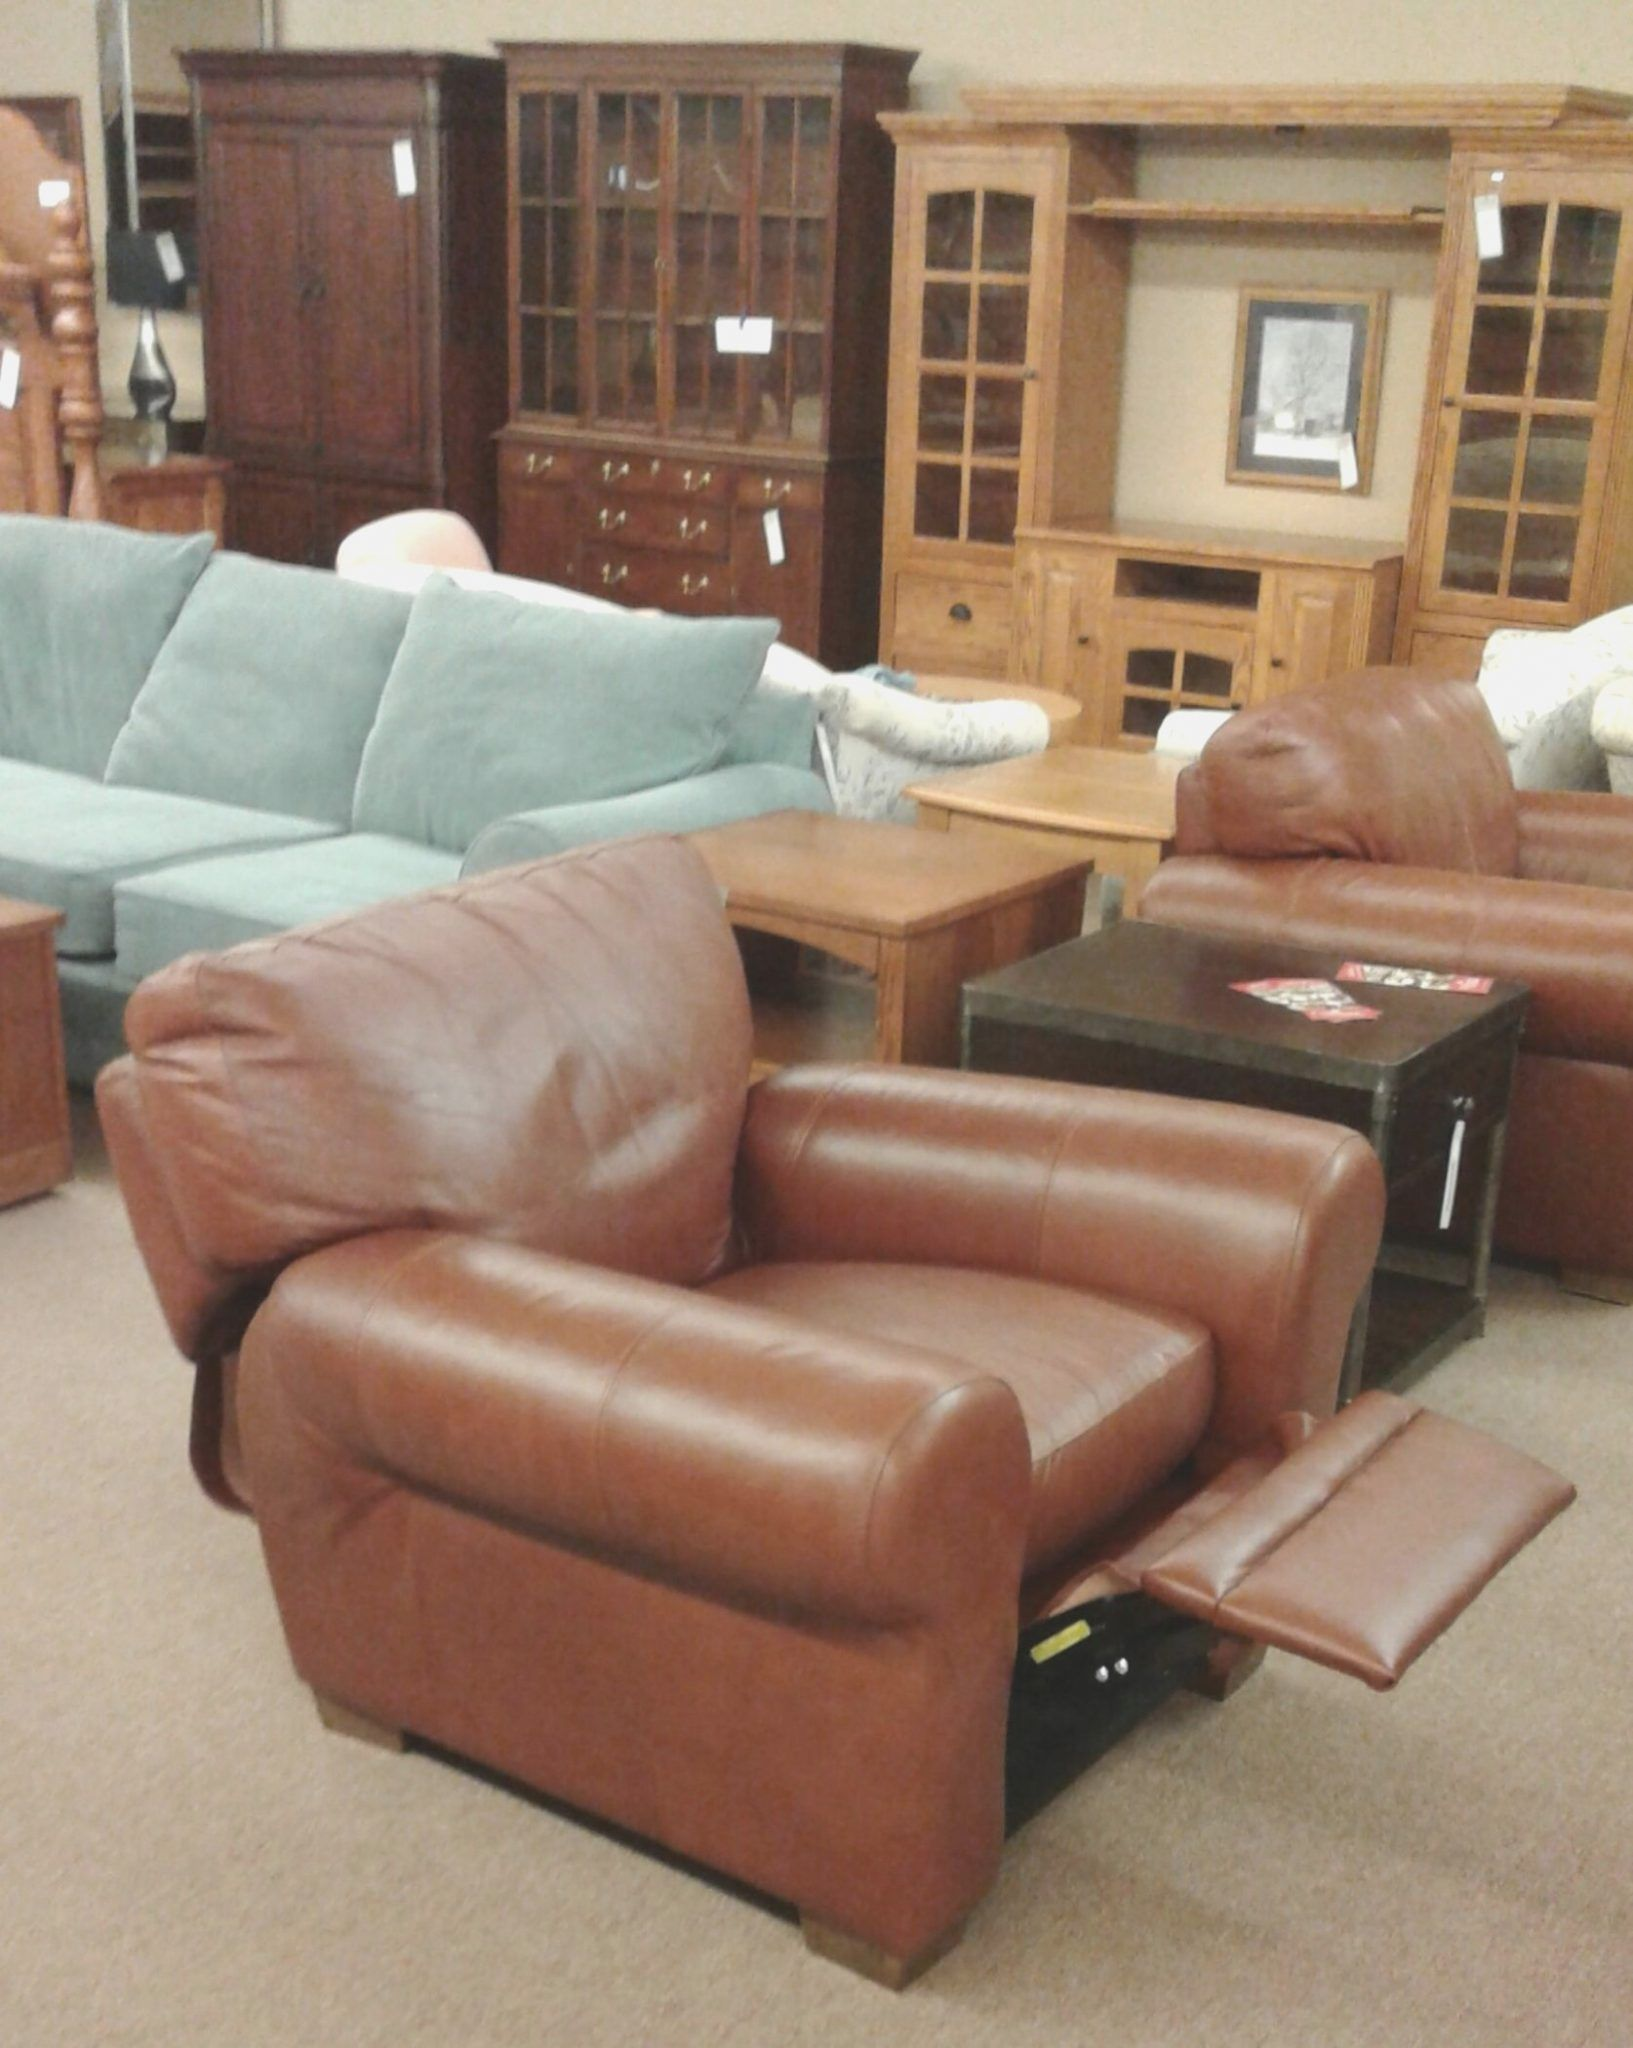 Chateau D Ax Leather Sofa   Chateau D Ax Corsica Sofa Sectional, Chateau D  Ax Furniture Brussels, Chateau D Ax Furniture Canada, Chateau D Ax Furniture  High ...